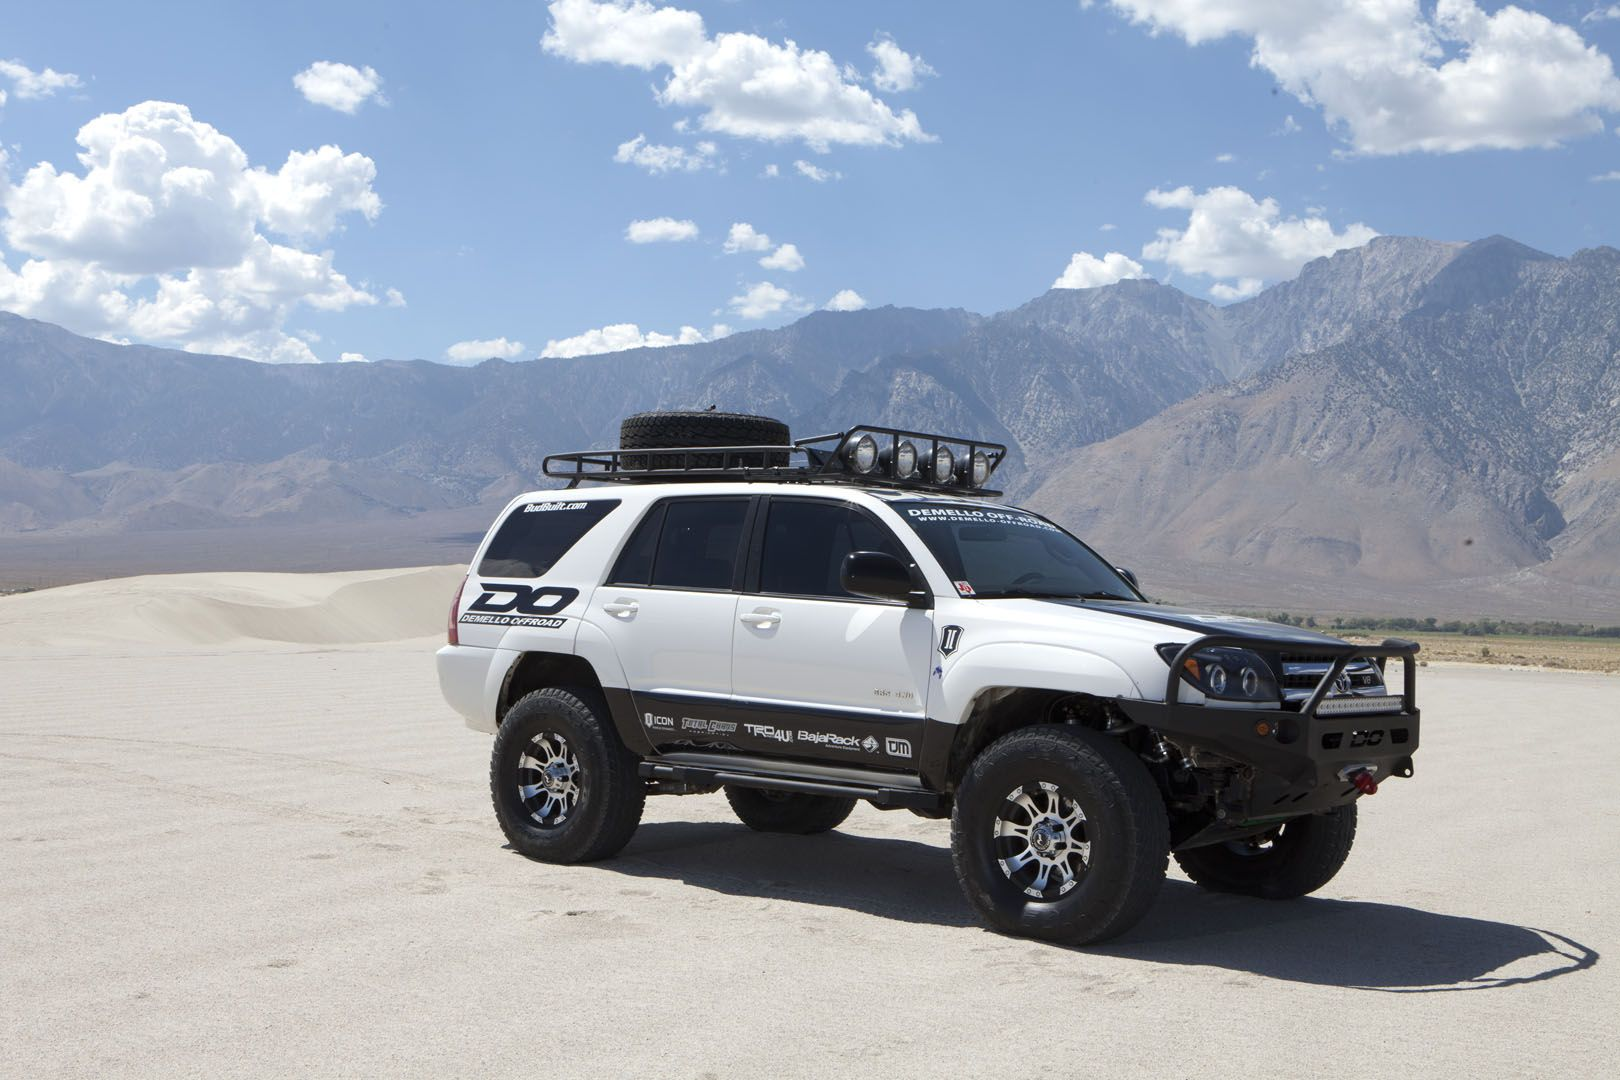 We've gathered our favorite ideas for Demello Offroad 4